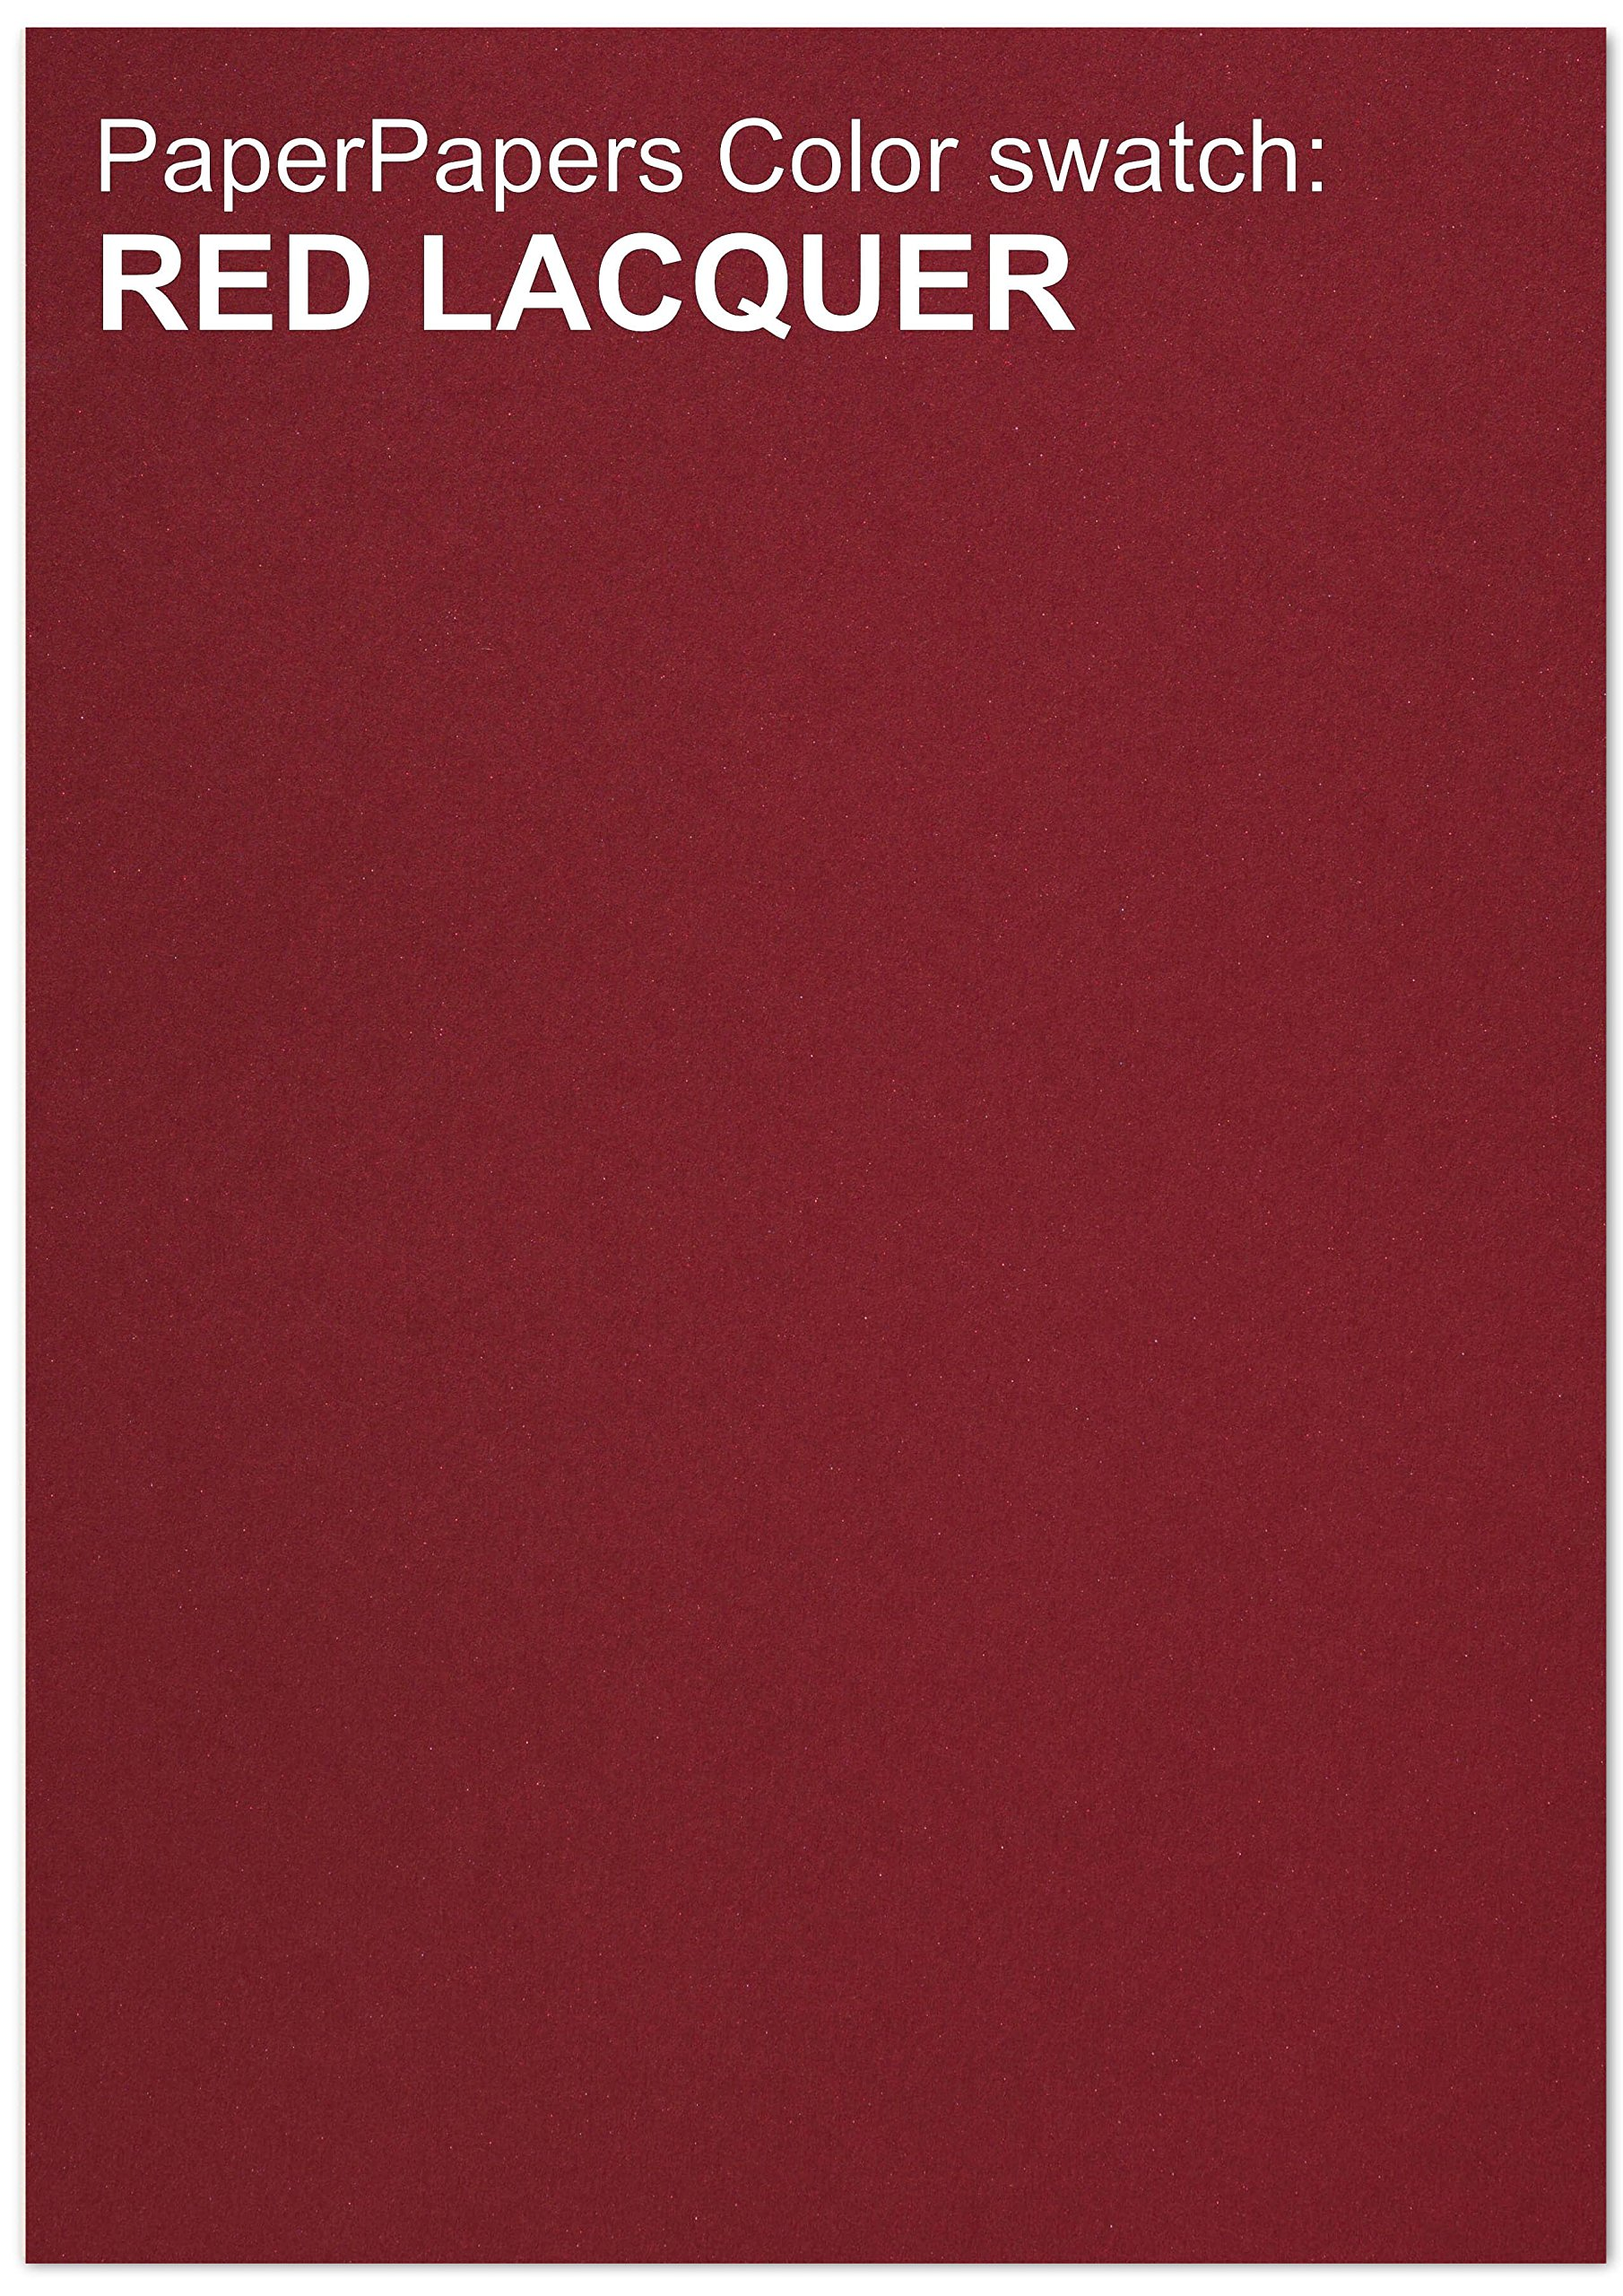 Curious Metallic - RED LACQUER Paper - 32T Multipurpose Paper - 12 x 18 - 200 PK by Paper Papers